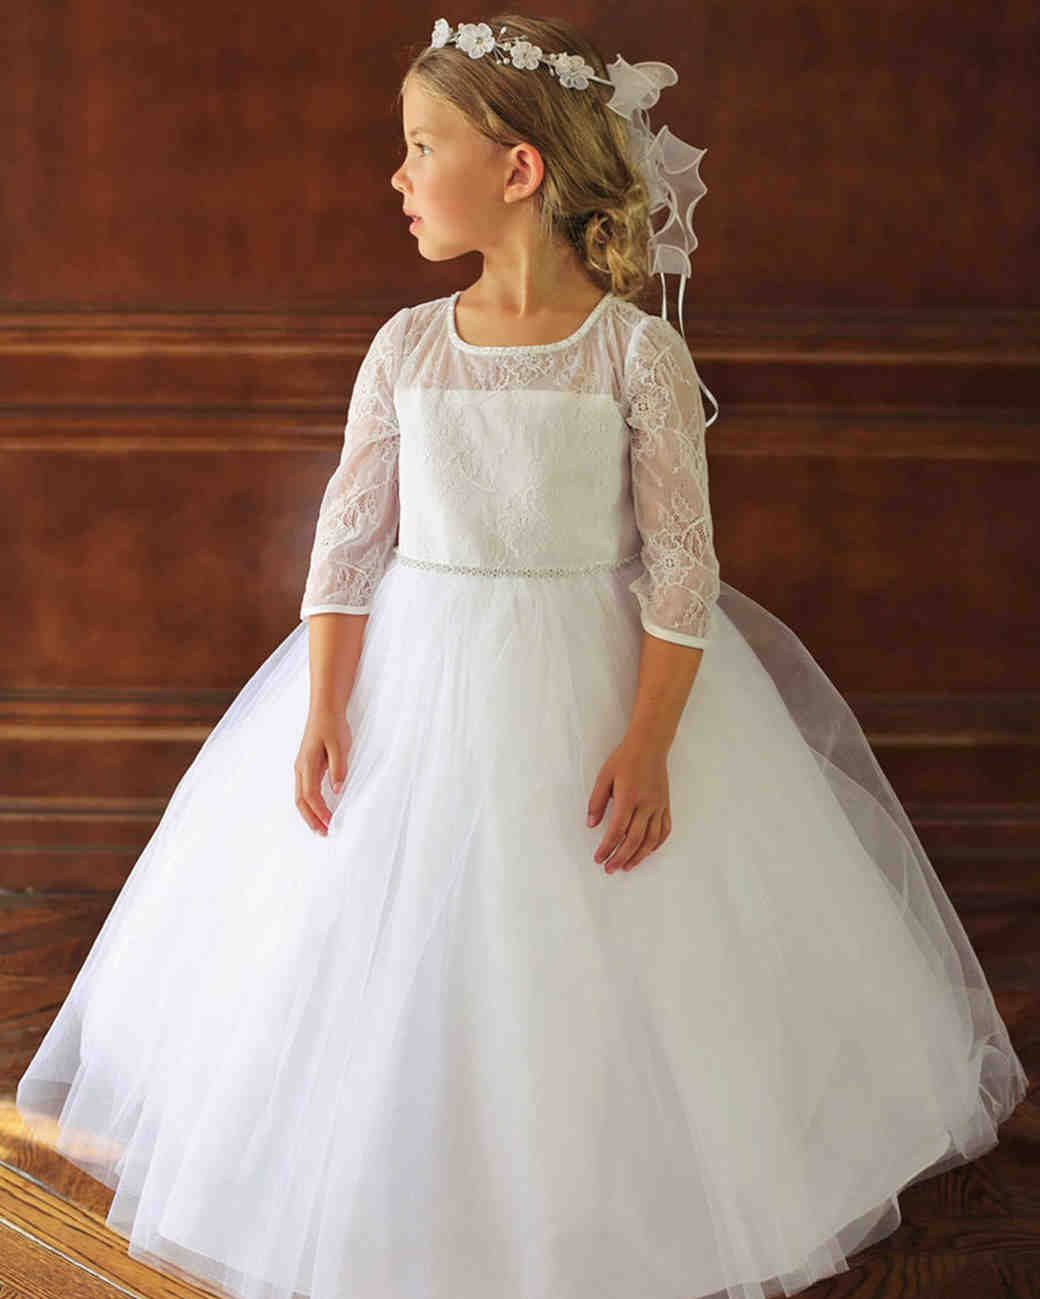 The Sweetest Long Sleeve Dresses For Flower Girls Martha Stewart